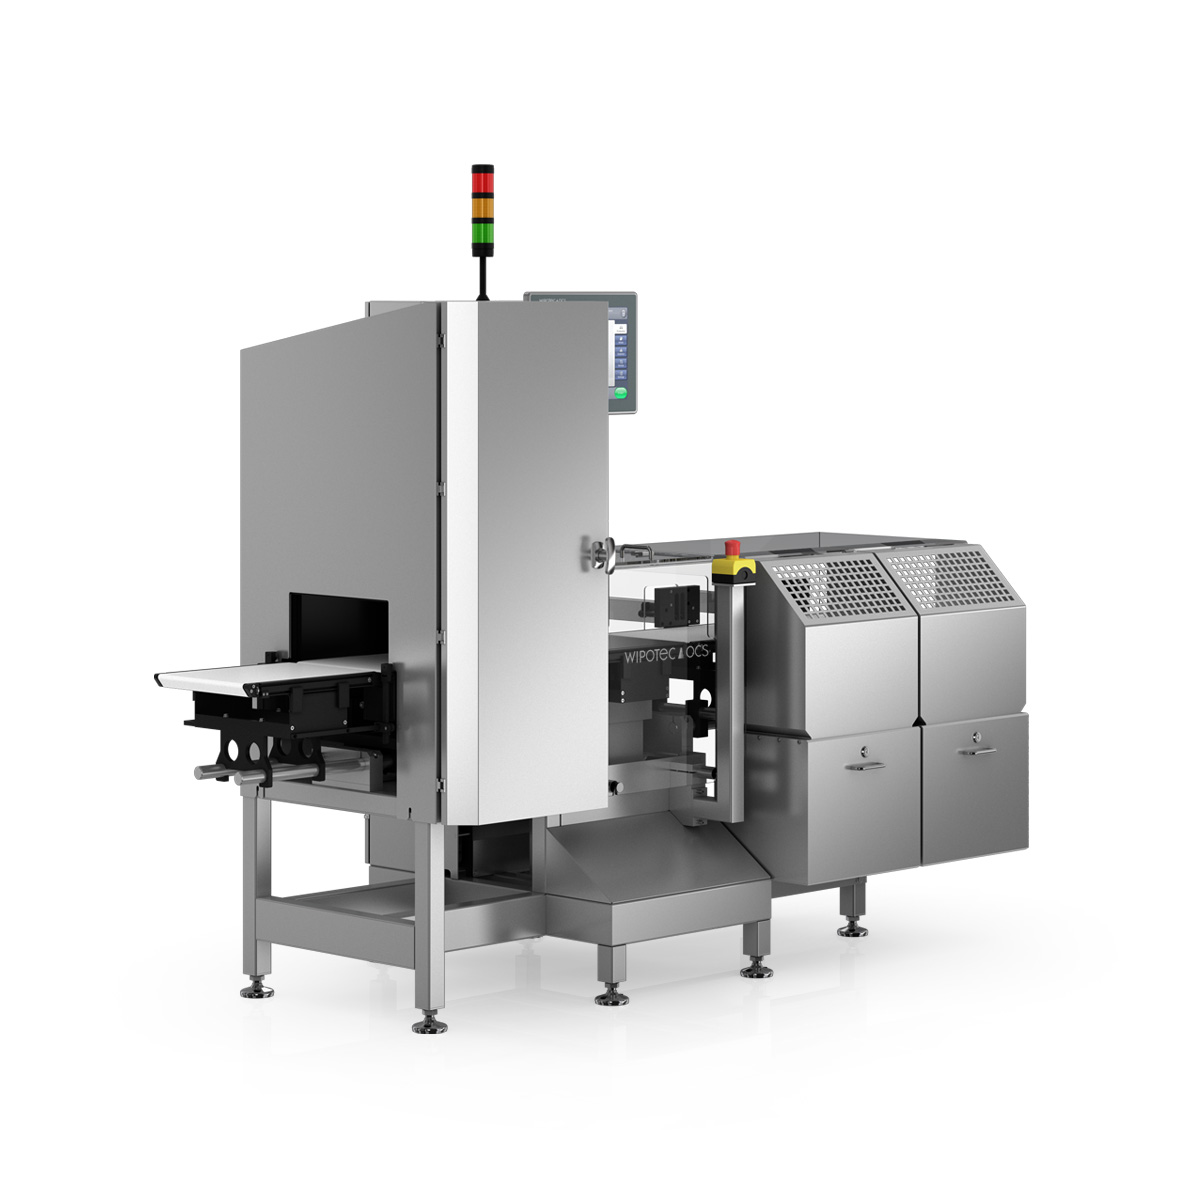 Checkweigher HC-A-V left view